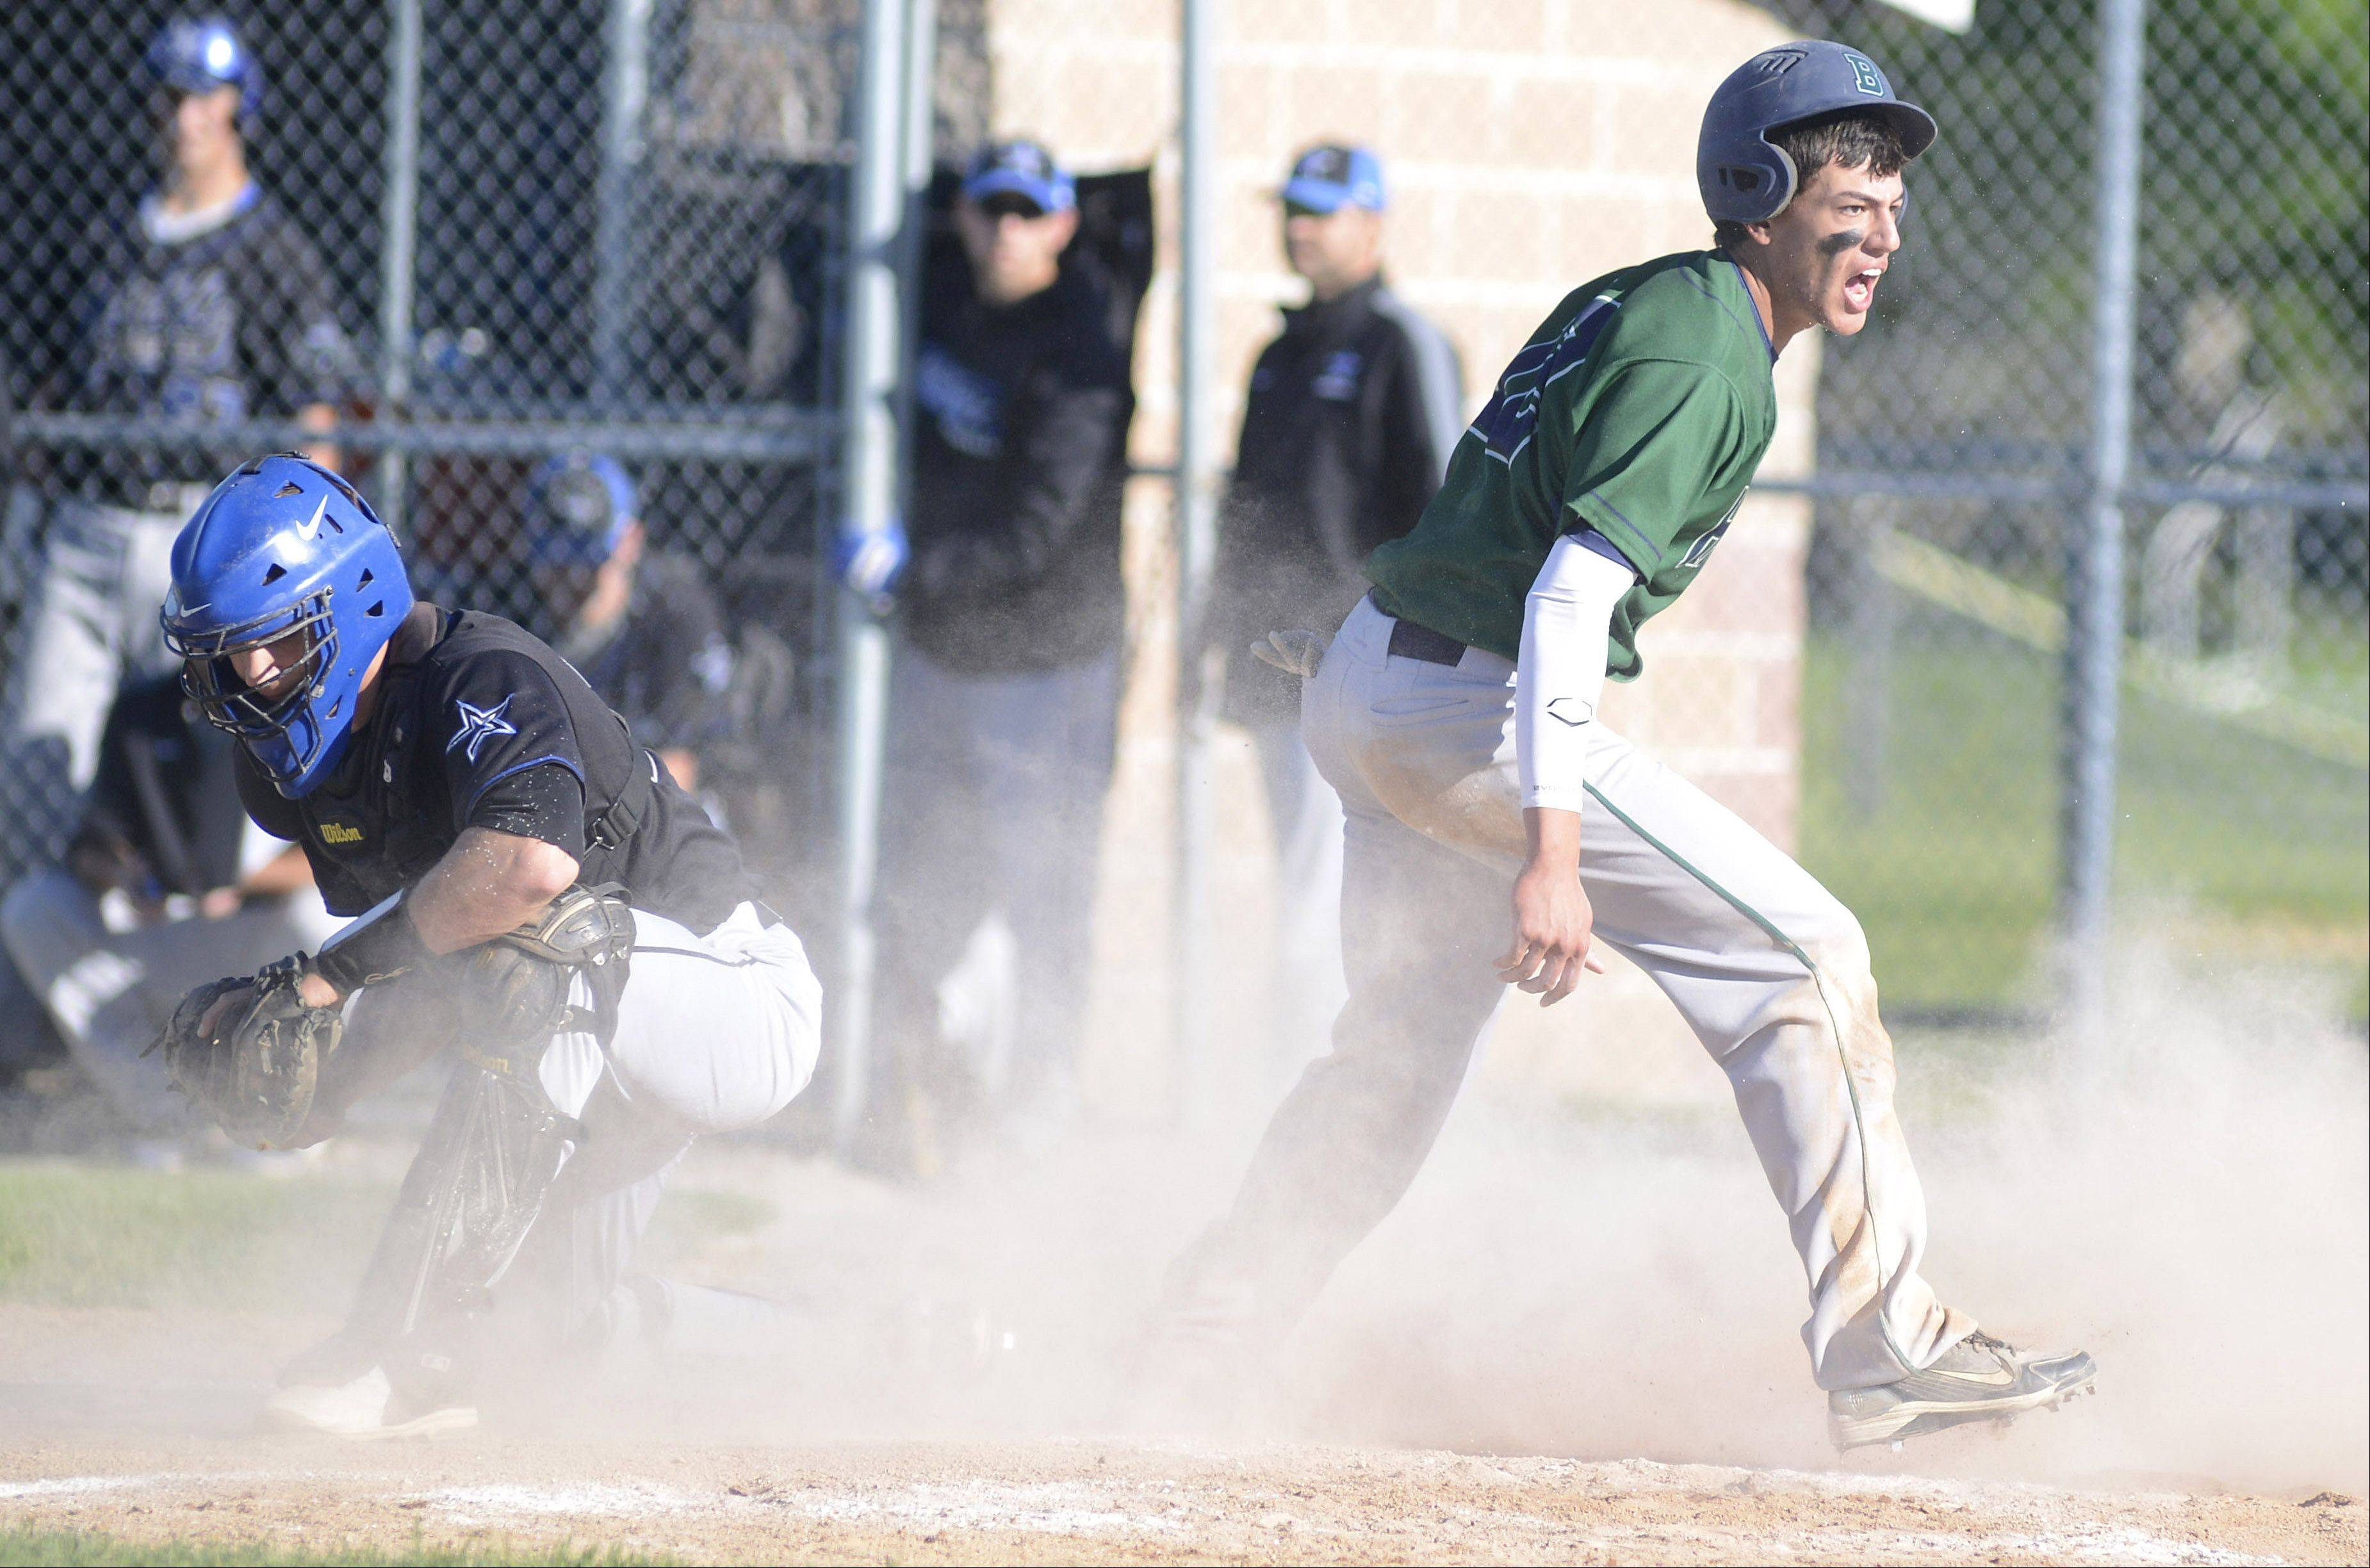 Bartlett's Jake Barrutia leaps up from a safe slide into home plate and celebrates leaving St. Charles North's catcher Ryan Thomas behind in the fifth inning of the Class 4A regional game on Friday.